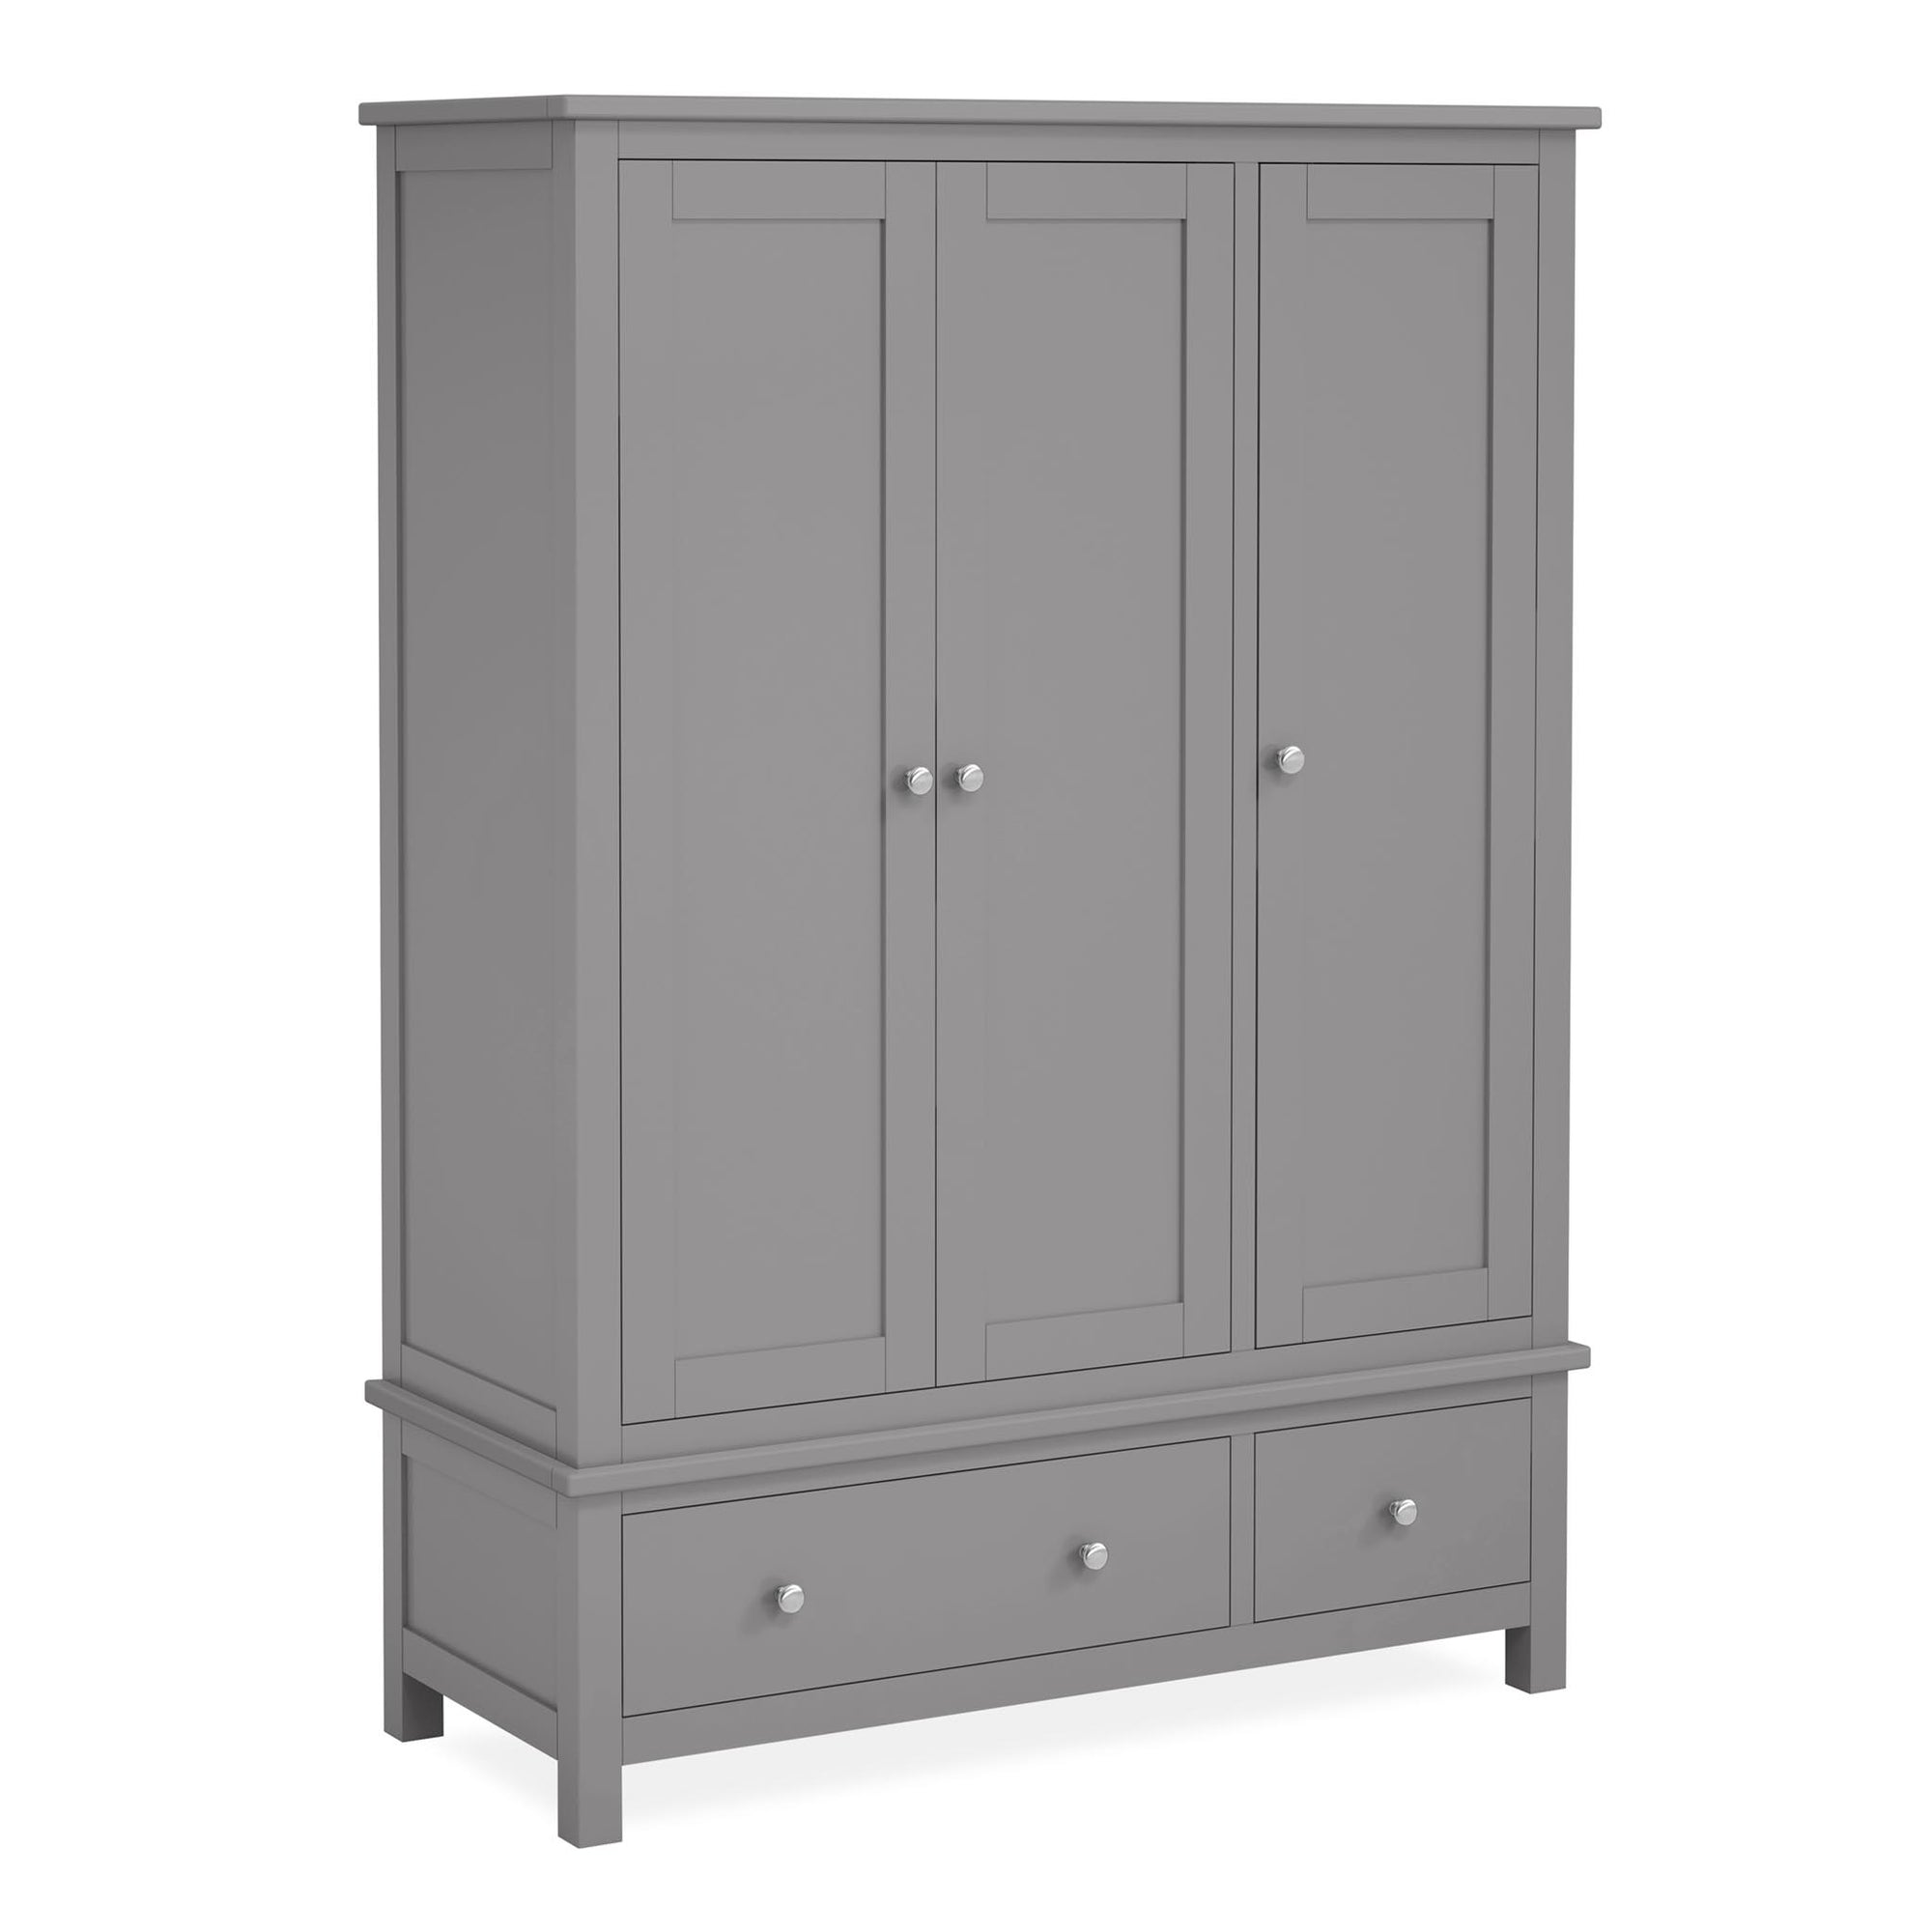 The Cornish Grey Large Wooden 3 Door Wardrobe from Roseland Furniture